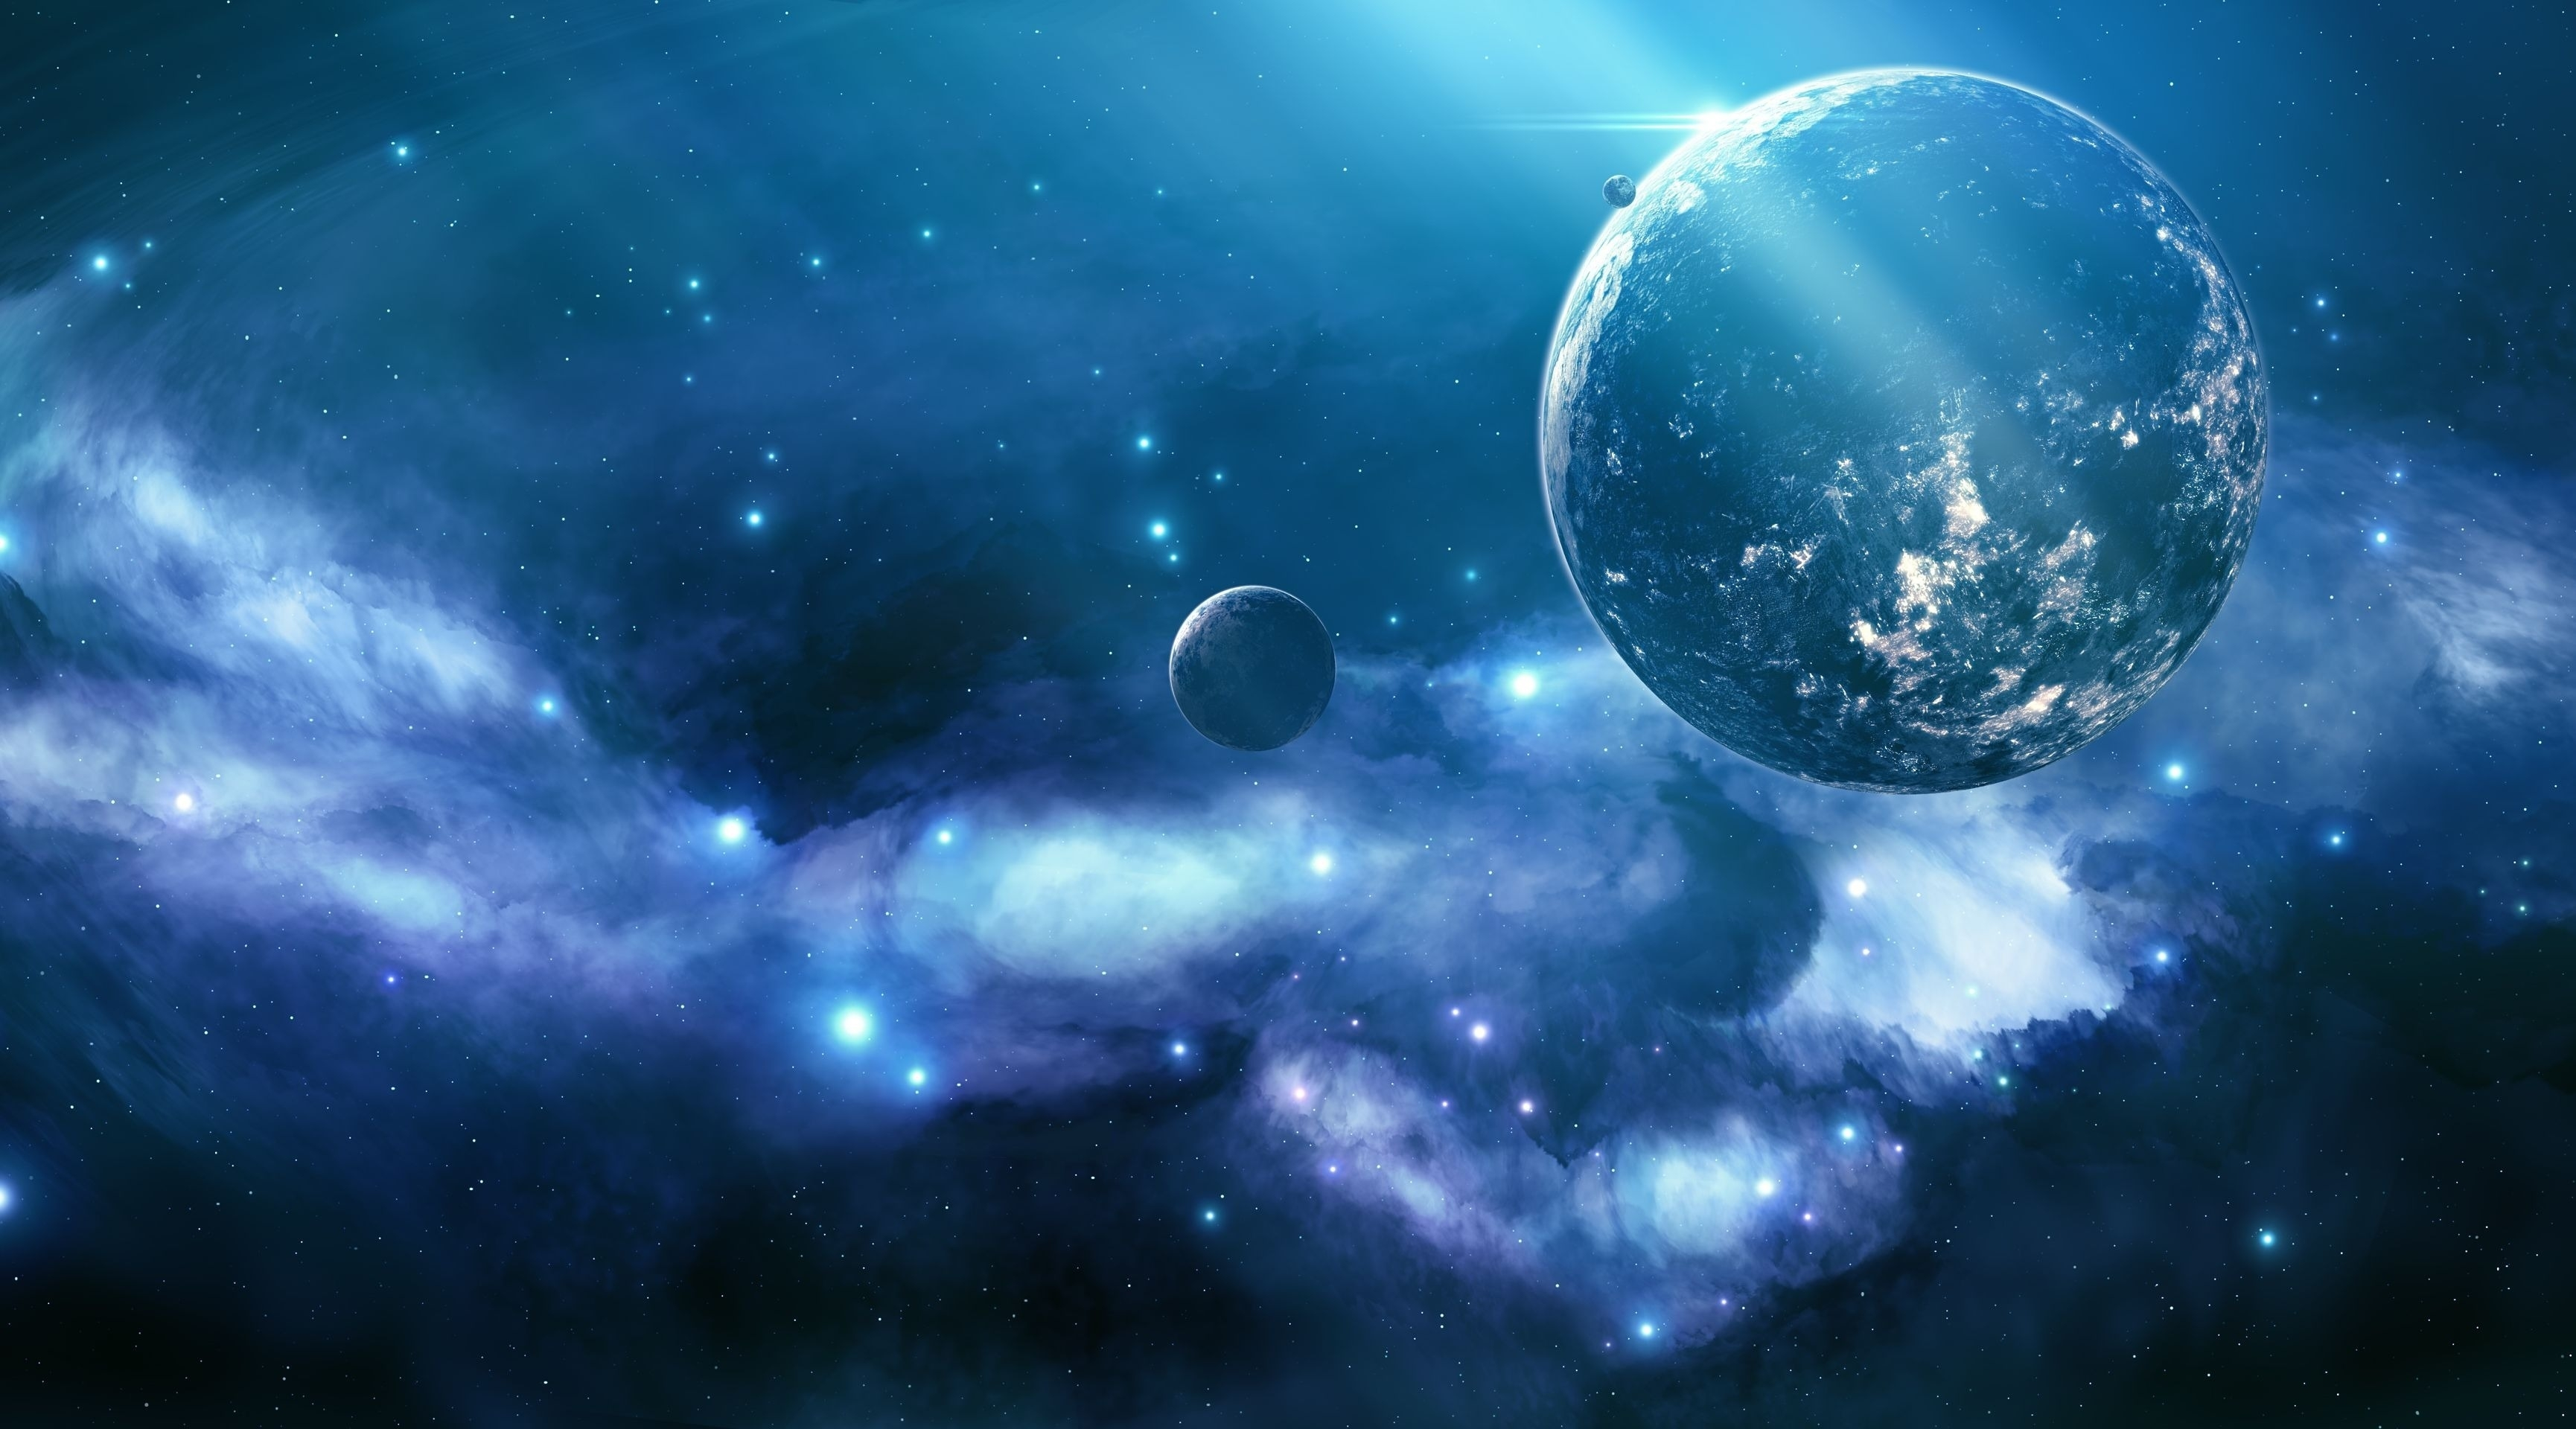 10 New Cool Backgrounds Hd Music Full Hd 1920 1080 For Pc: 10 New Cool Sci Fi Backgrounds FULL HD 1920×1080 For PC